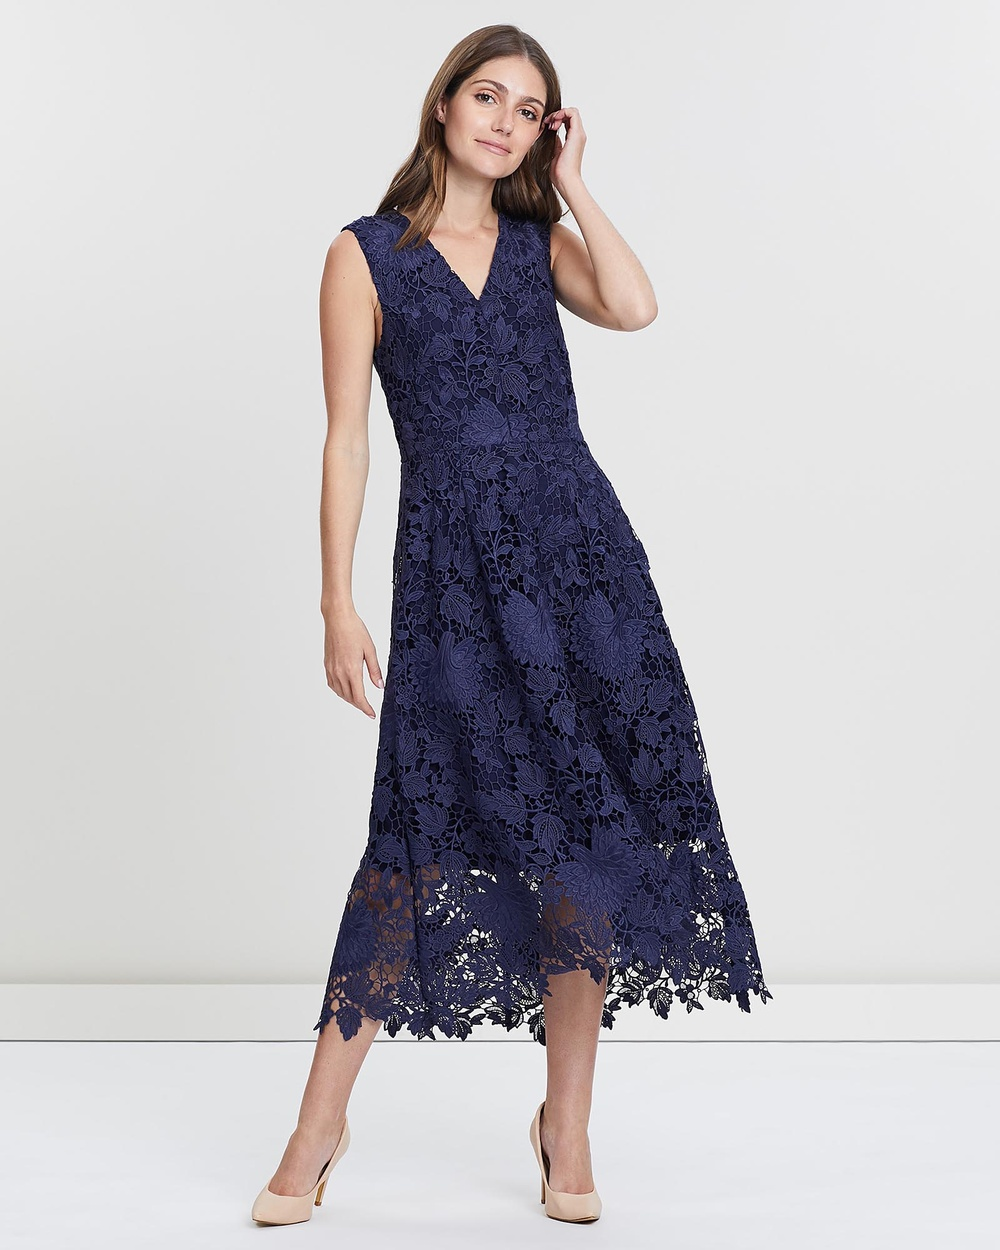 David Lawrence NAVY Sleeveless Lace Fit And Flare Dress